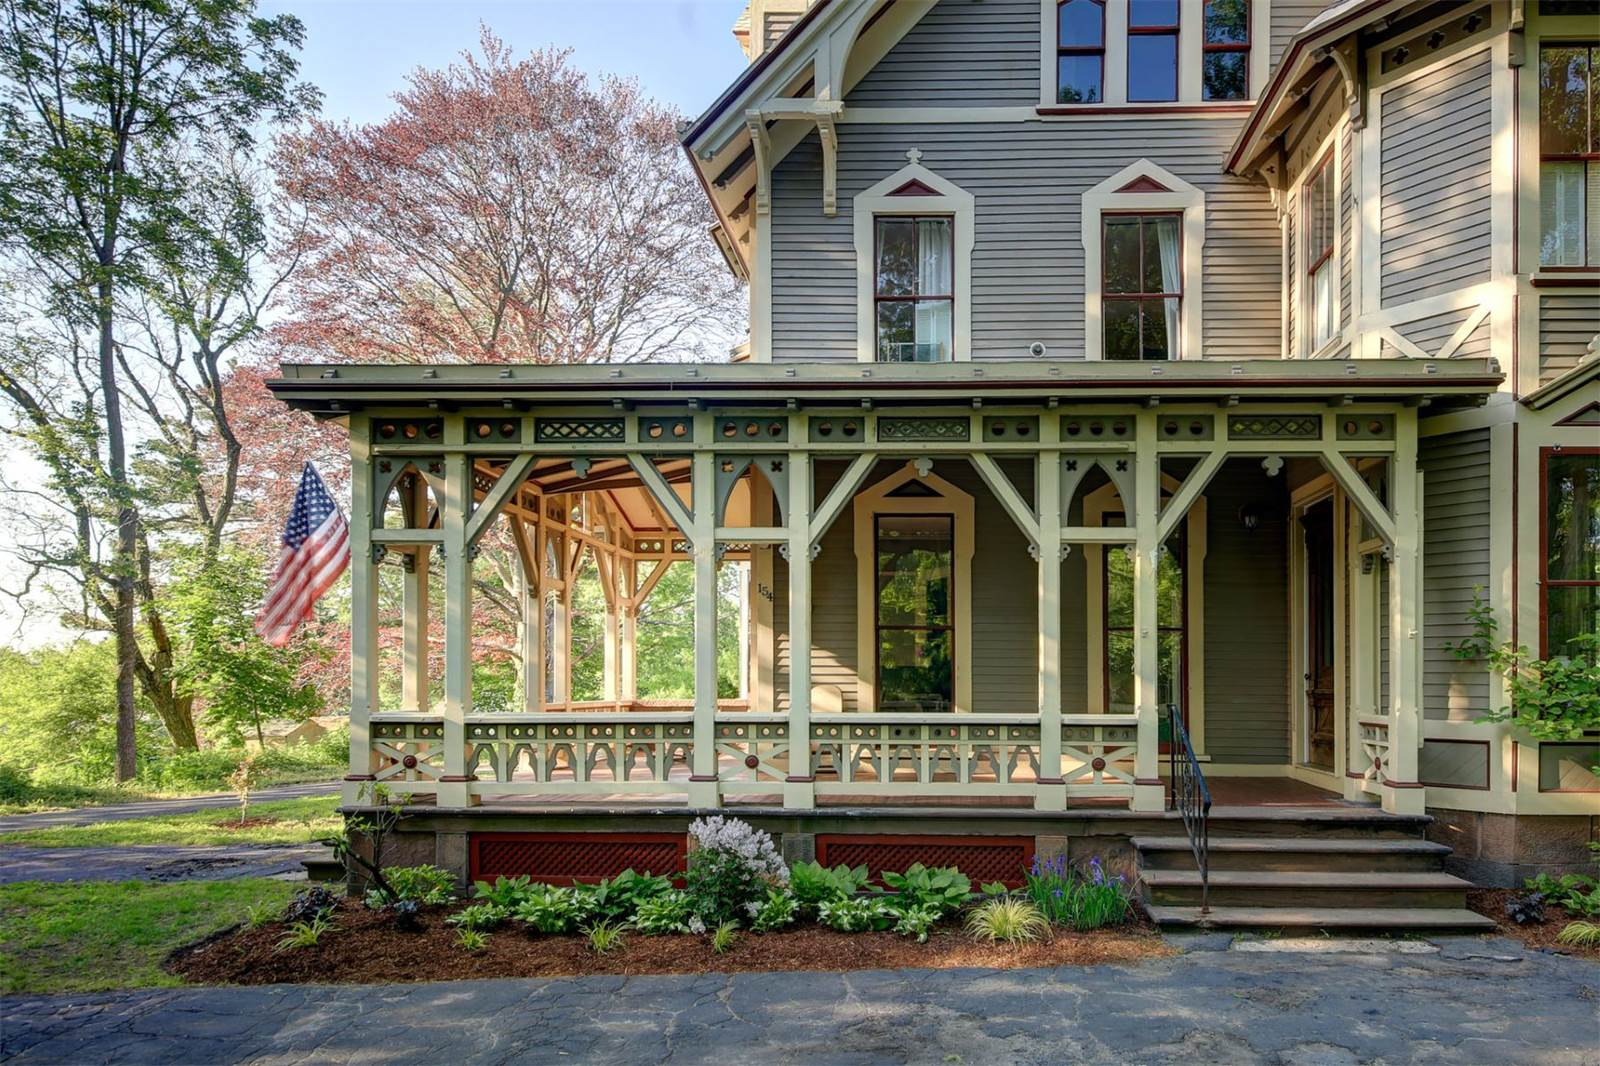 Victorian Gothic House victorian gothic mansion with whimsical secrets asks $525k - curbed